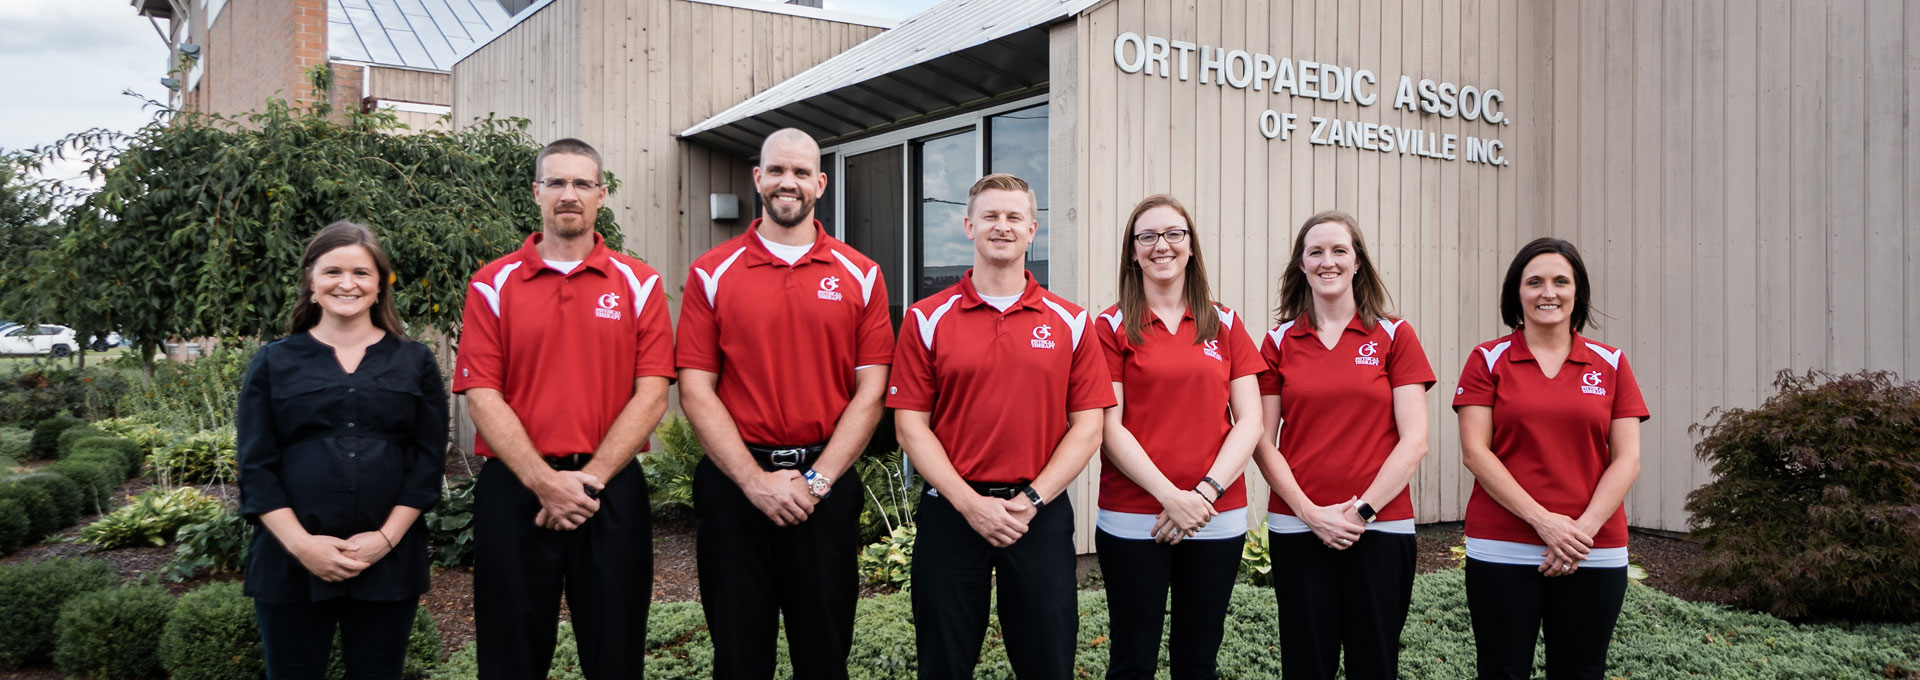 Physical Therapy - Ohio - Physical Therapists - Cost Effective Treatment